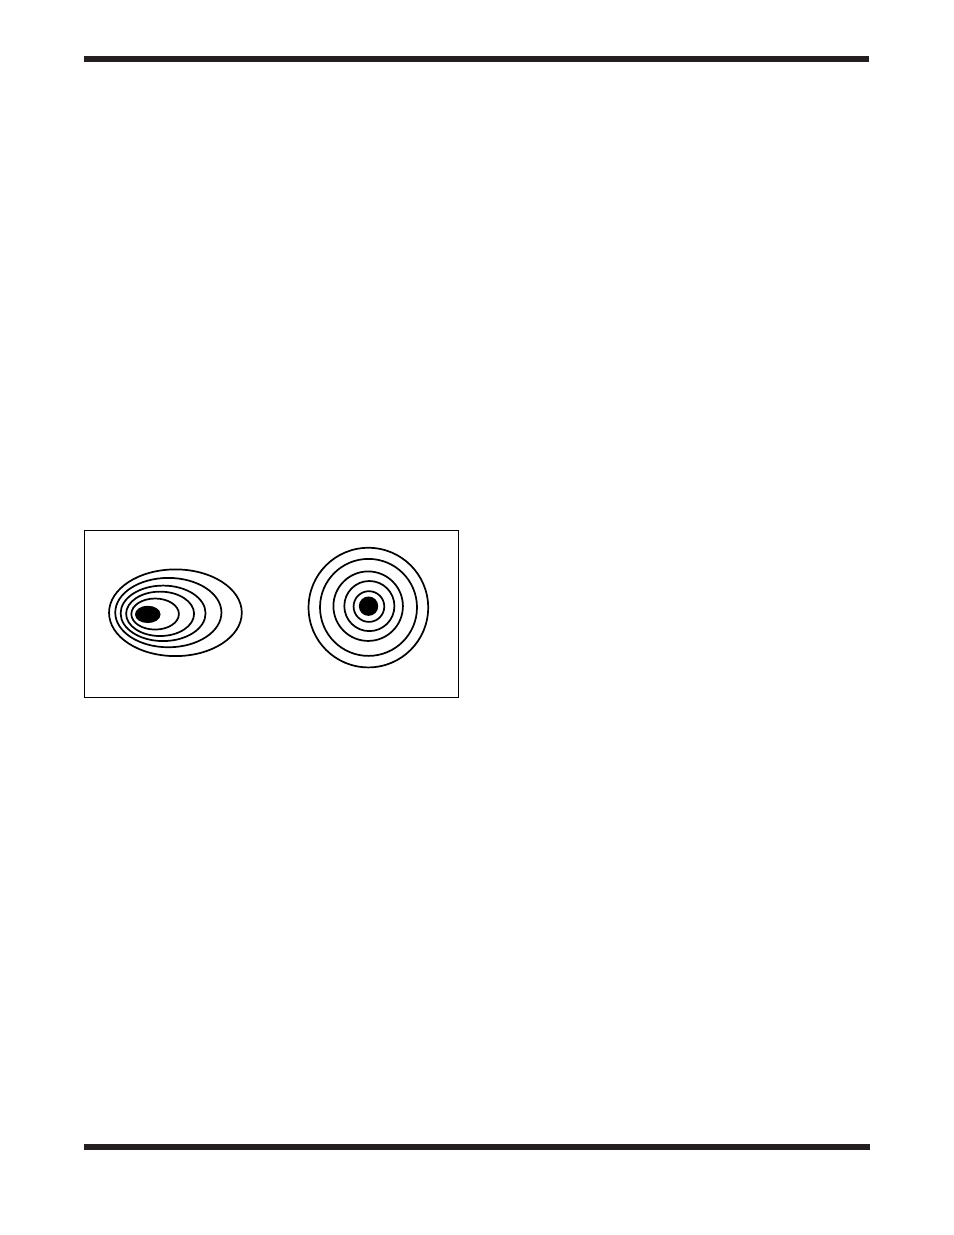 As-t102maxa.pdf, Collimating orion starmax, And apex | Orion 102mm EQ User  Manual | Page 17 / 19